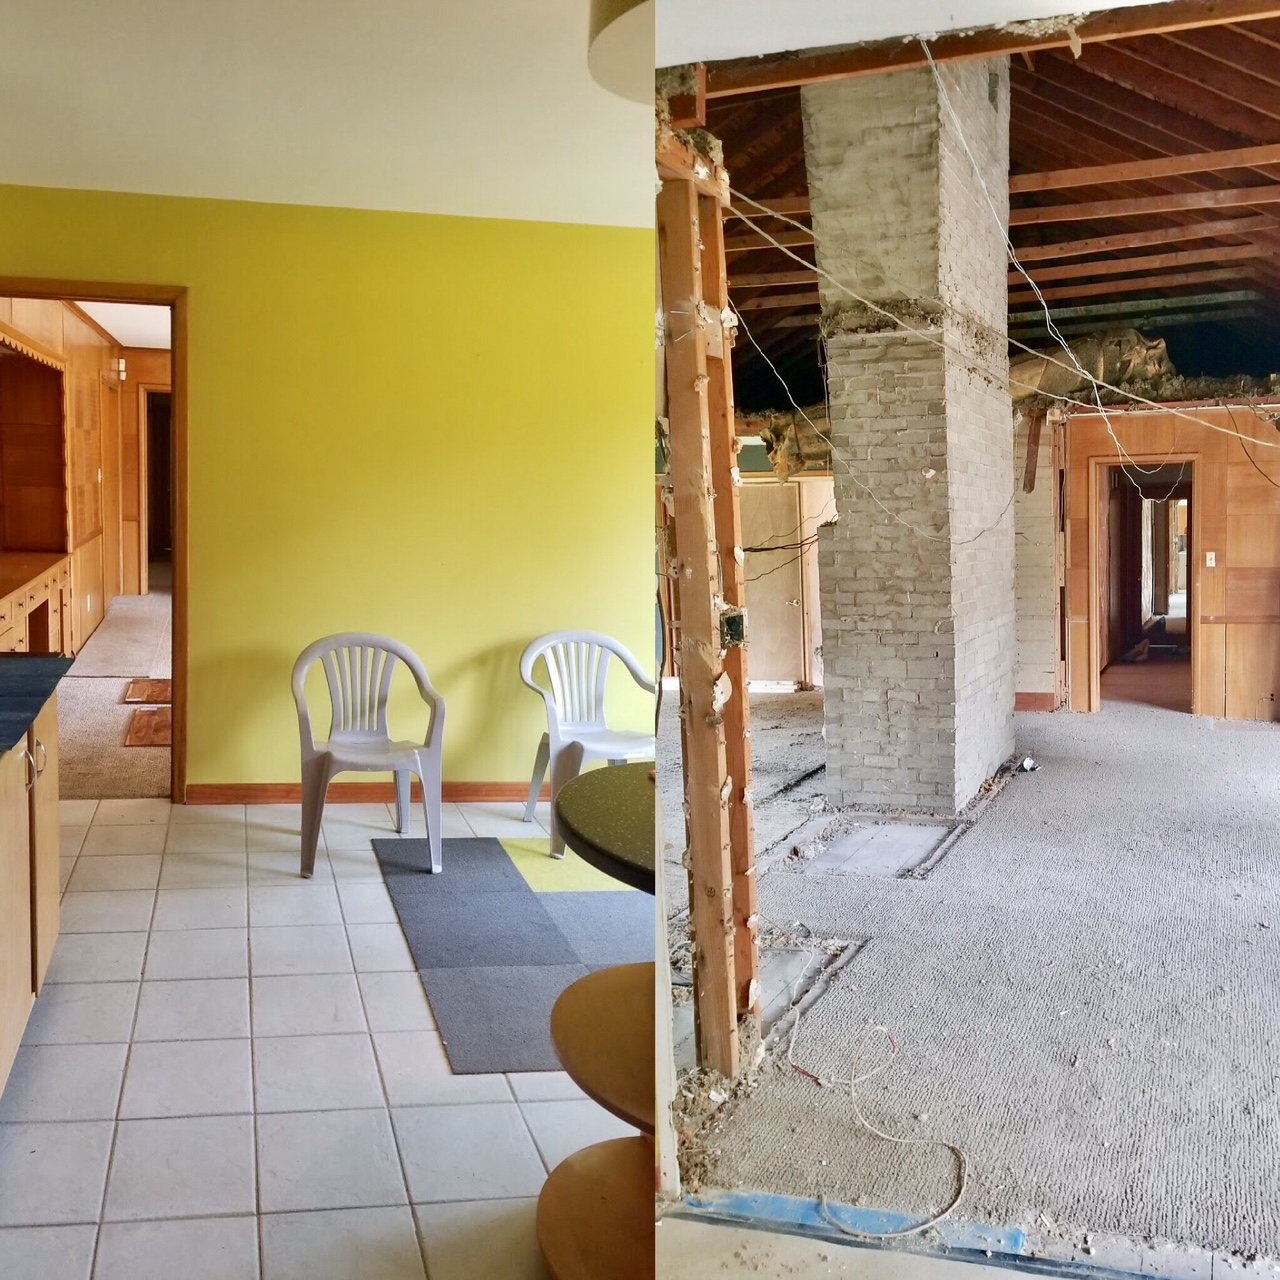 Left: The kitchen and breakfast nook area.  Right: The green wall has been knocked out (and about every other wall) to open up the kitchen to the rest of the living space.  Details: To the right of the chimney will be our dining room. The left of the chimney is our family room. We plan on all hardwood floors, with some type of buffet (where you see that blue tape) to create a little separation between the dining room and kitchen area.